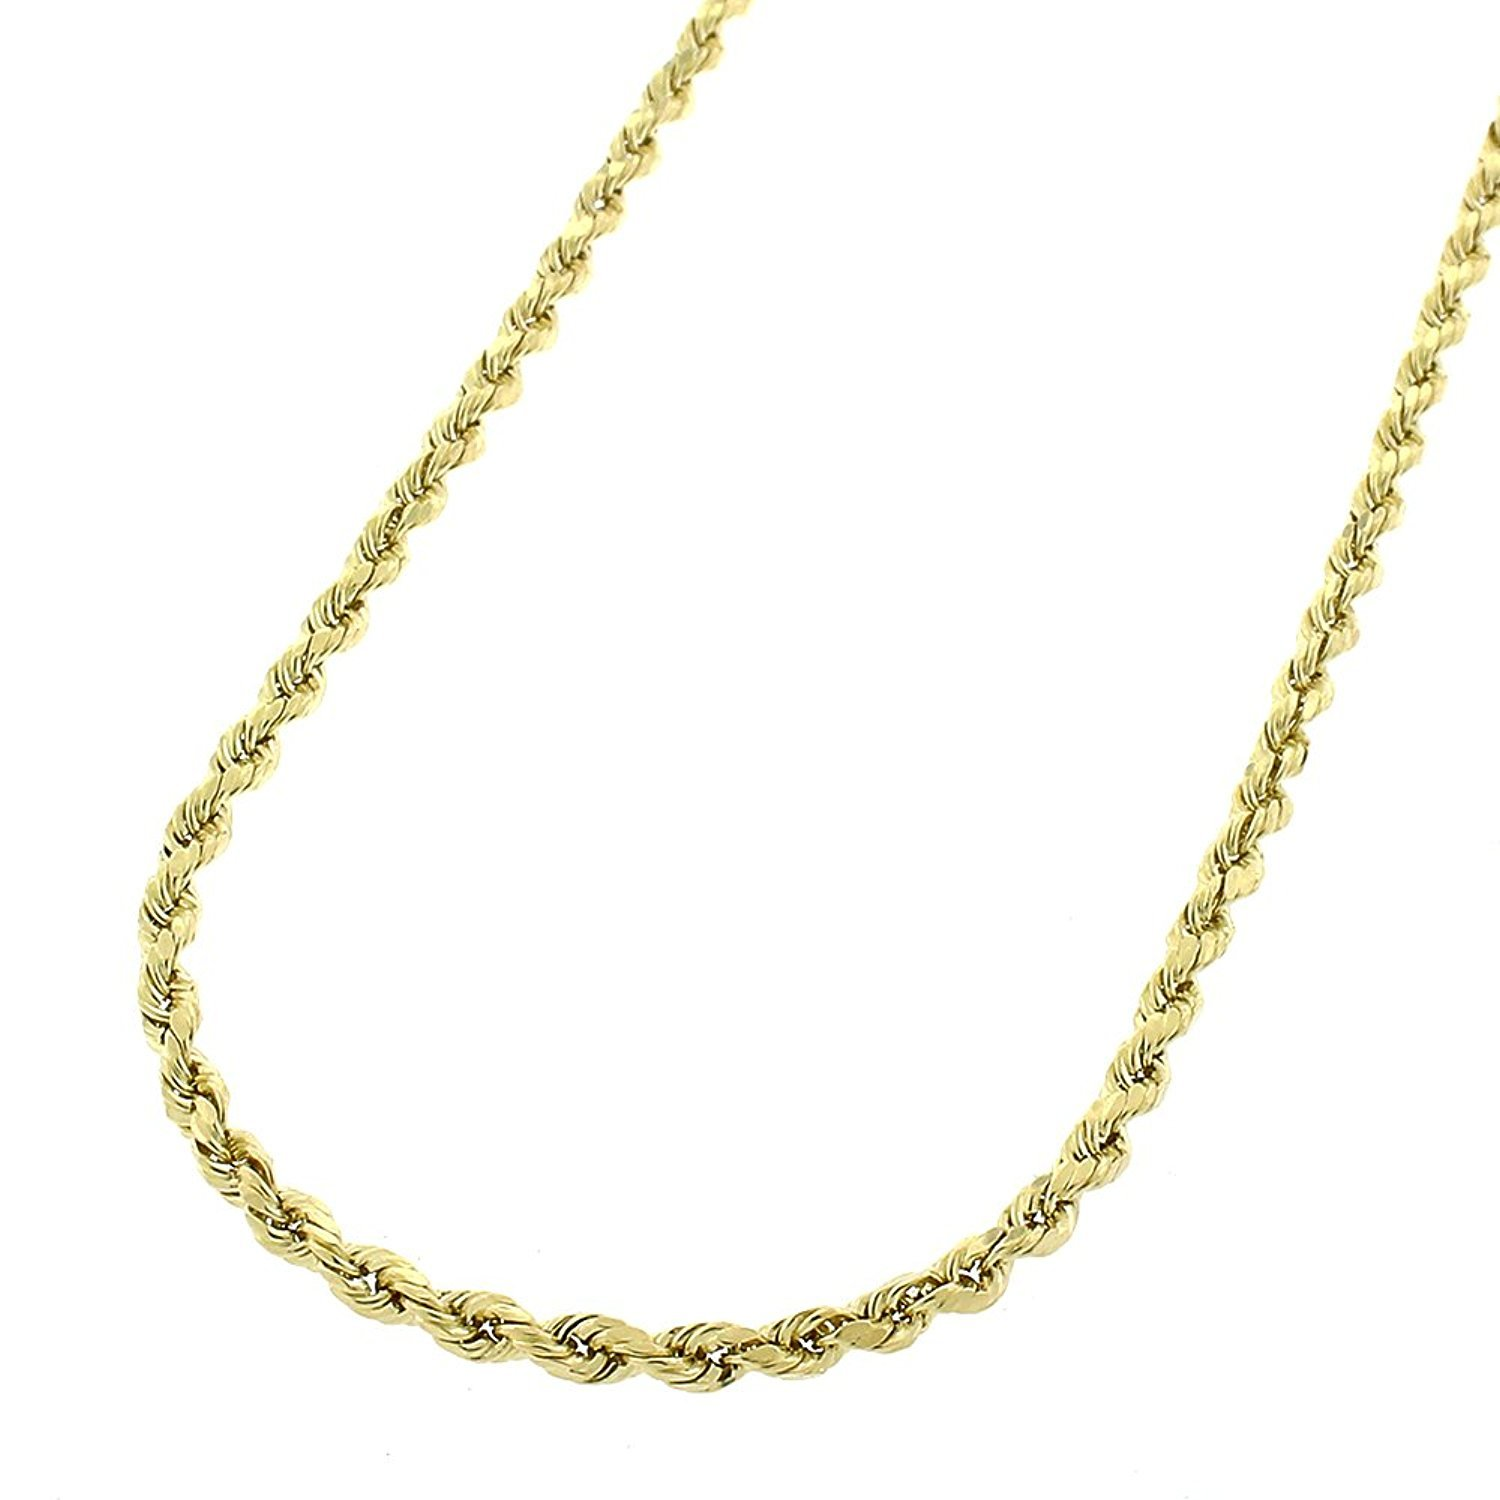 14k Yellow Gold 2mm Hollow Rope Diamond-Cut Link Twisted Chain Necklace 16'' - 24'' (22)